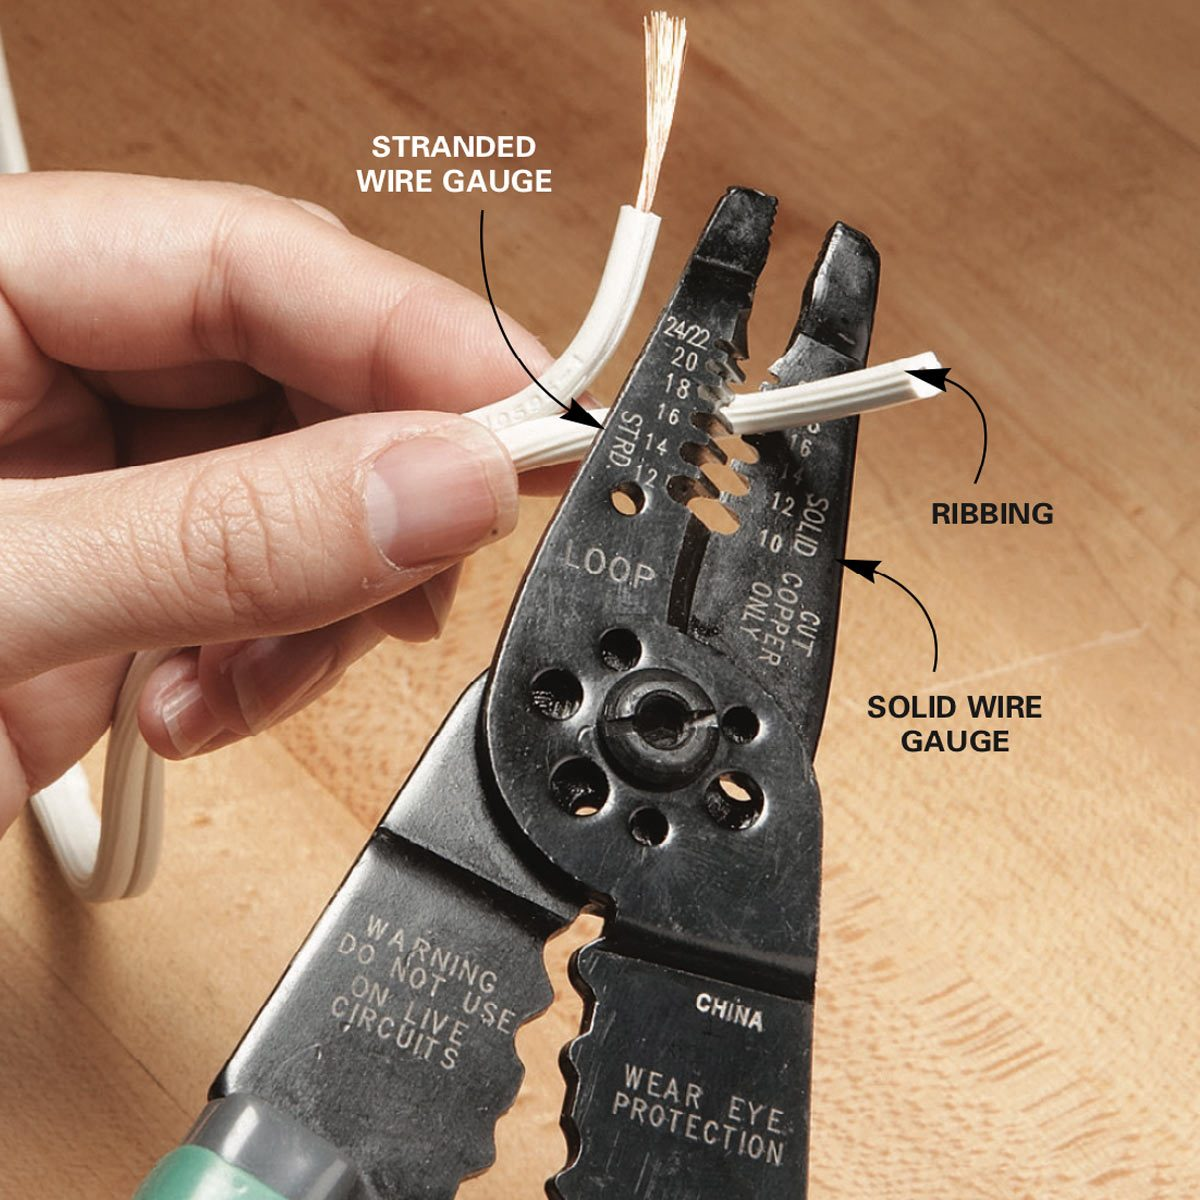 Fix A Lamp Cord Family Handyman The Wiring Phone Plug Strip Insulation Off Wire By Cutting And Pulling Through Stripper To Prepare Cut End For New Or Pull Two